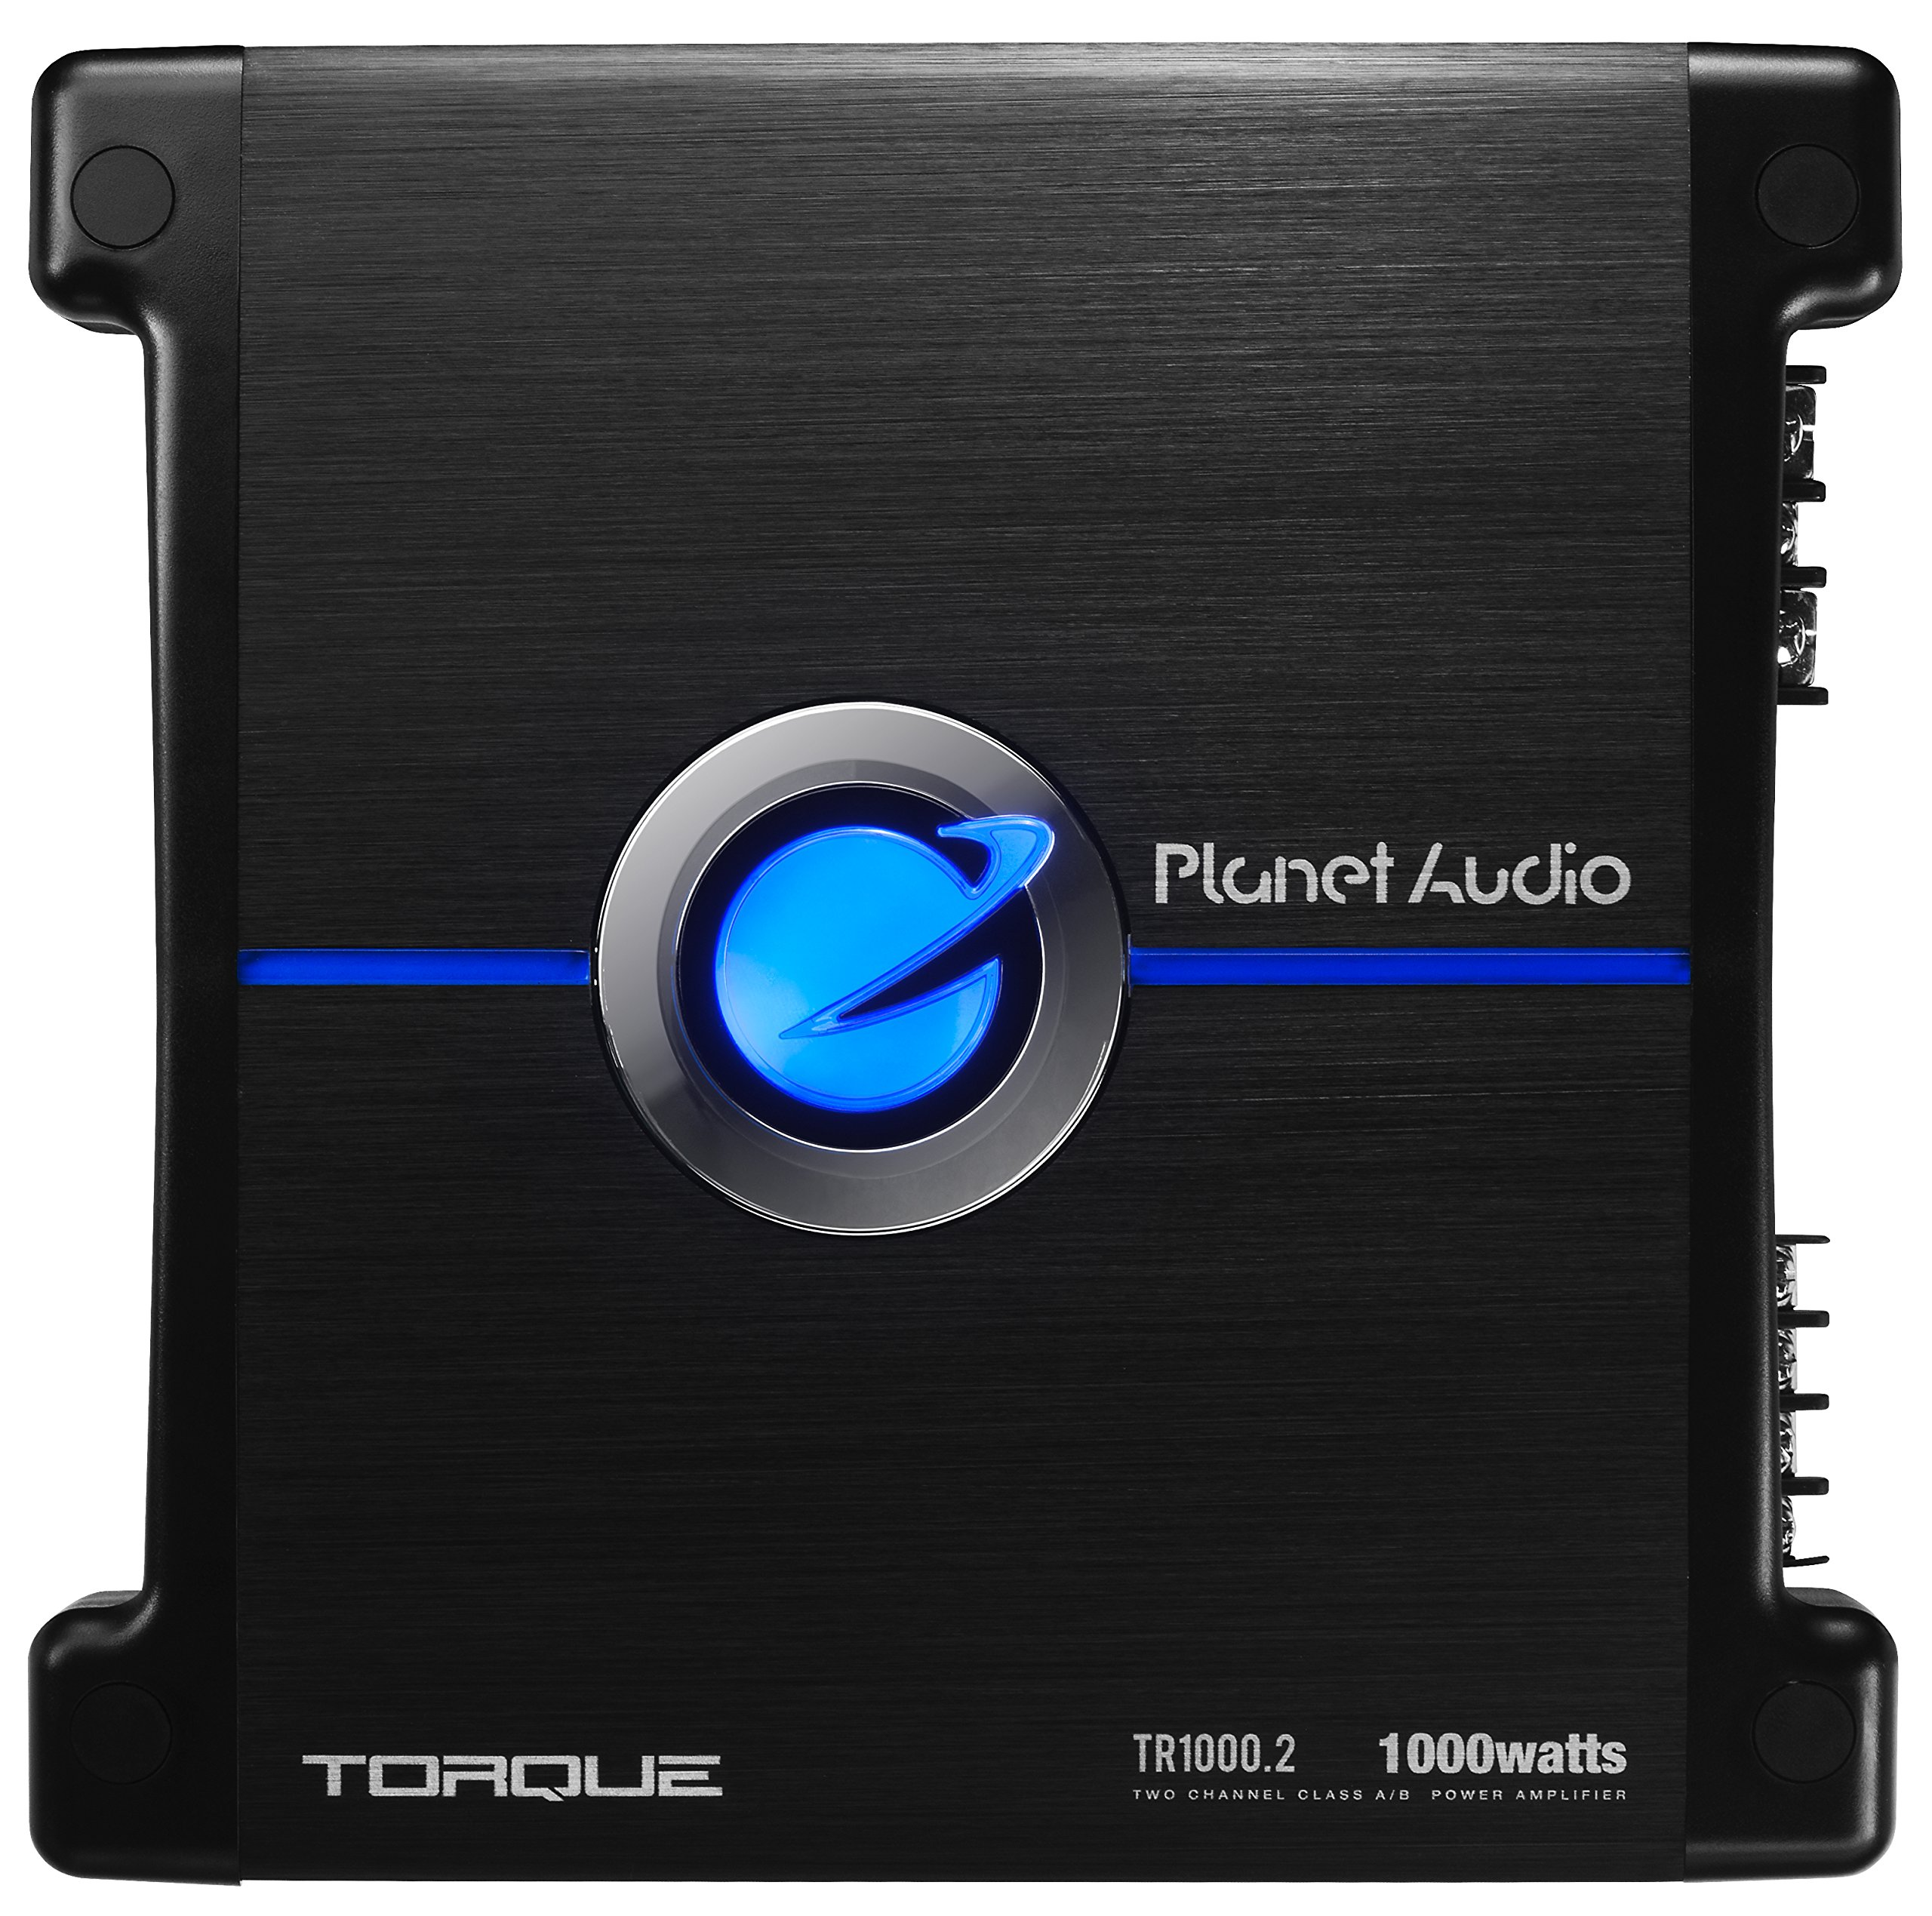 Planet Audio TR1000.2 Torque 1000 Watt, 2 Channel, 2 to 8 Ohm Stable Class A/B, Full Range, Bridgeable, MOSFET Car Amplifier with Remote Subwoofer Control